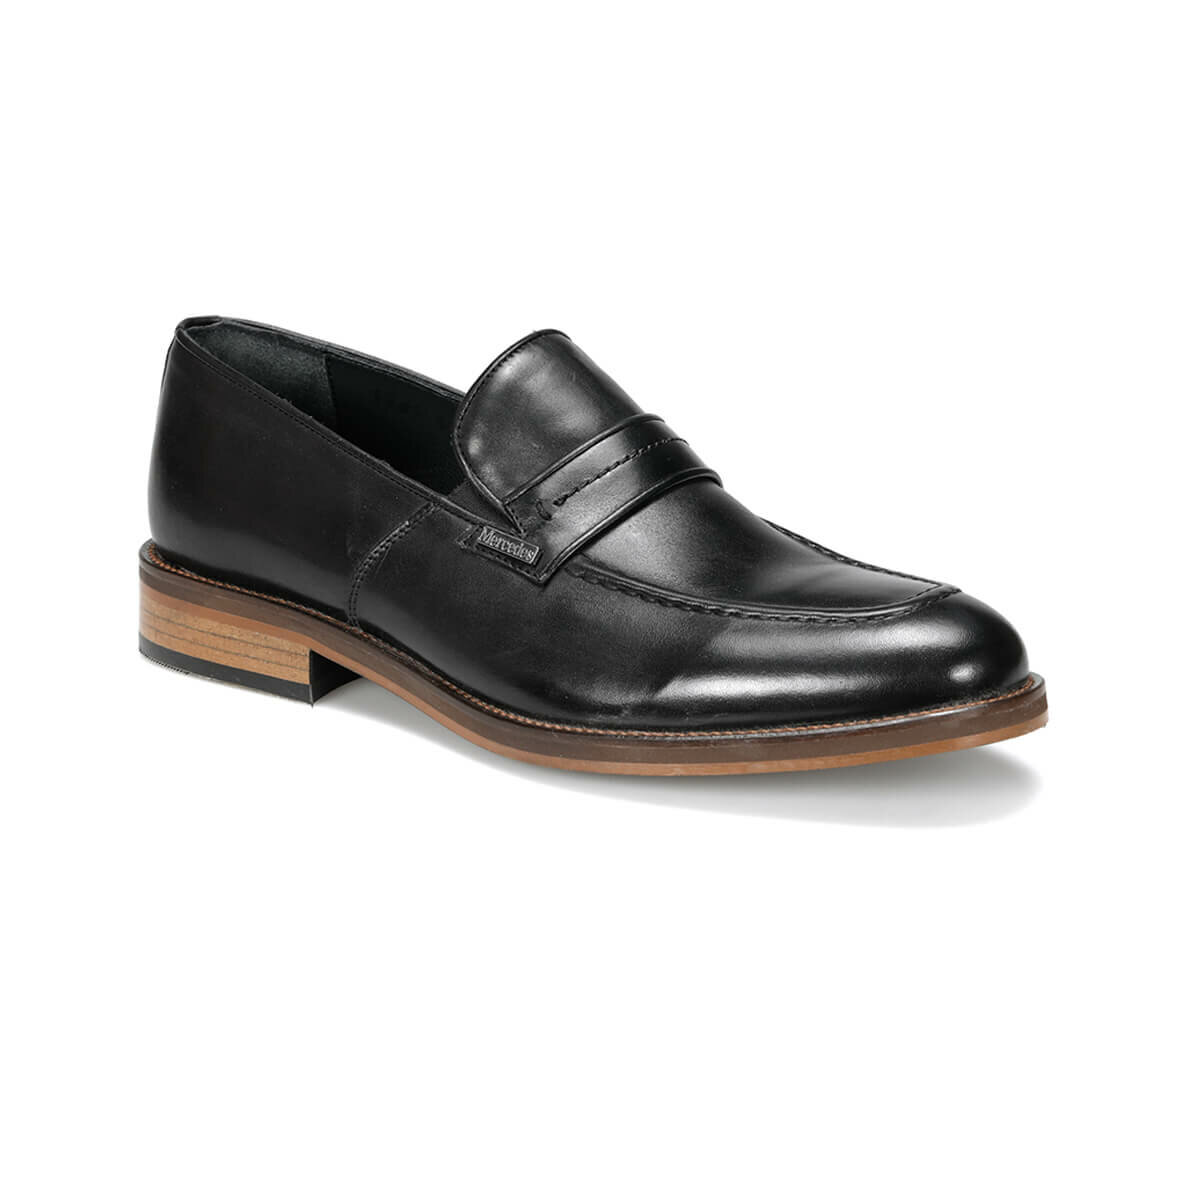 FLO MORRIS 9PR Black Men 'S Classic Shoes MERCEDES